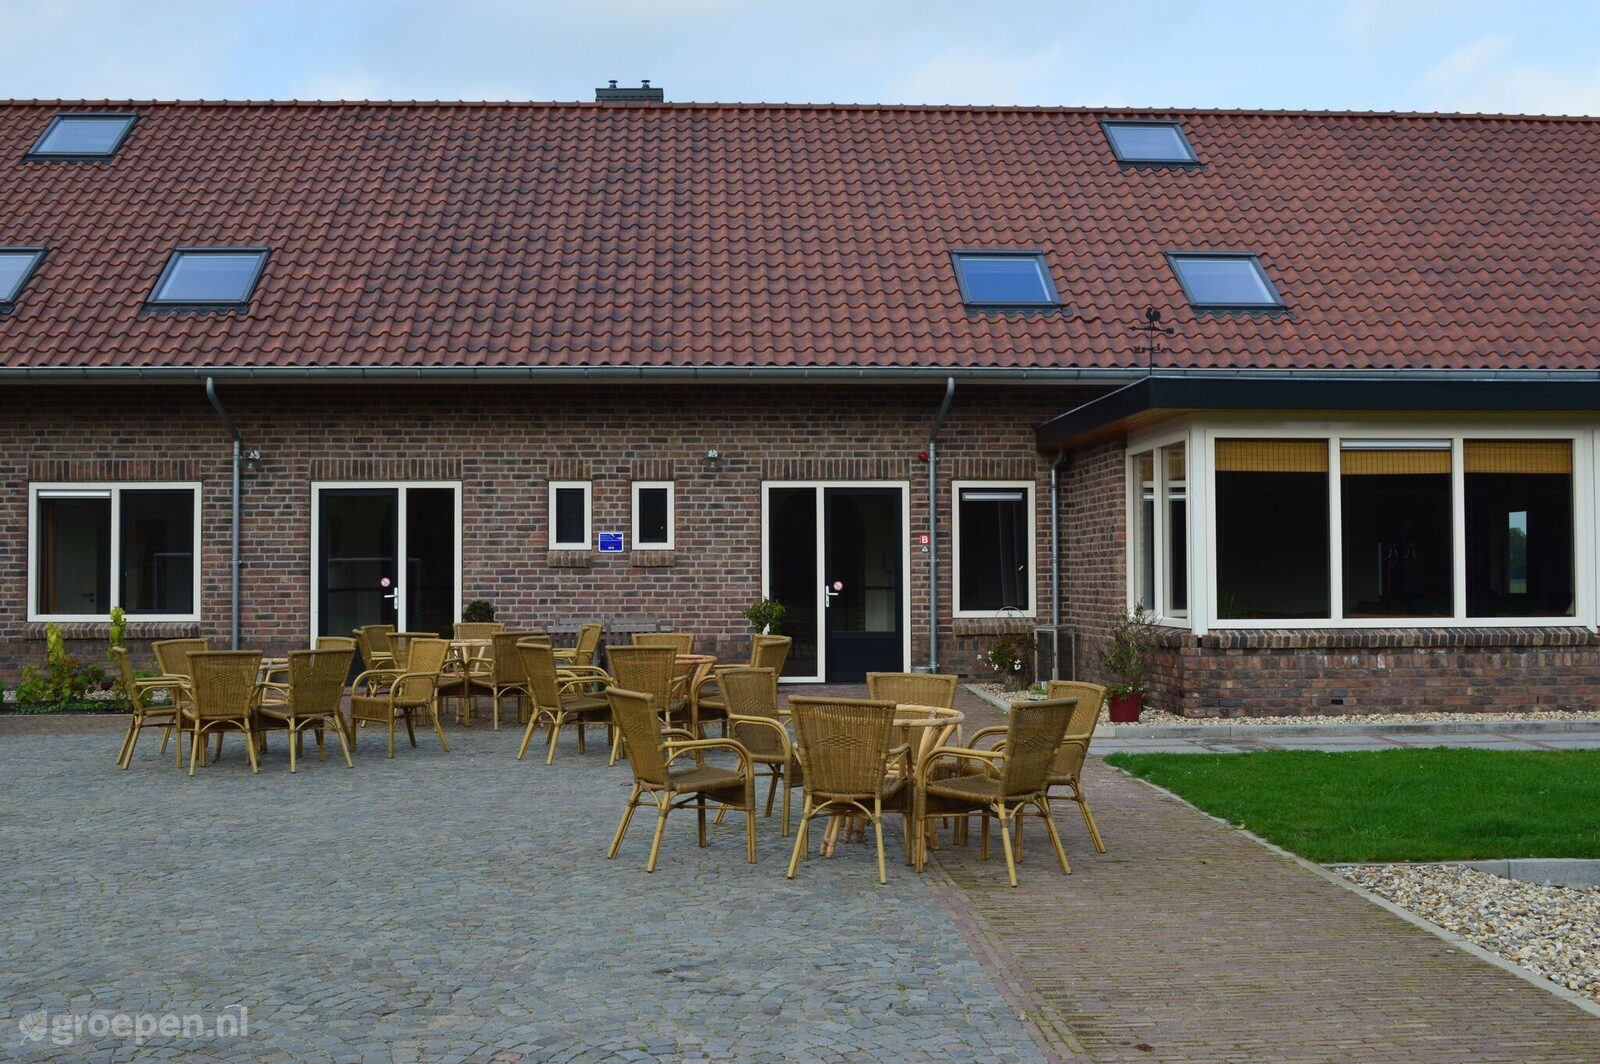 Group accommodation Barchem